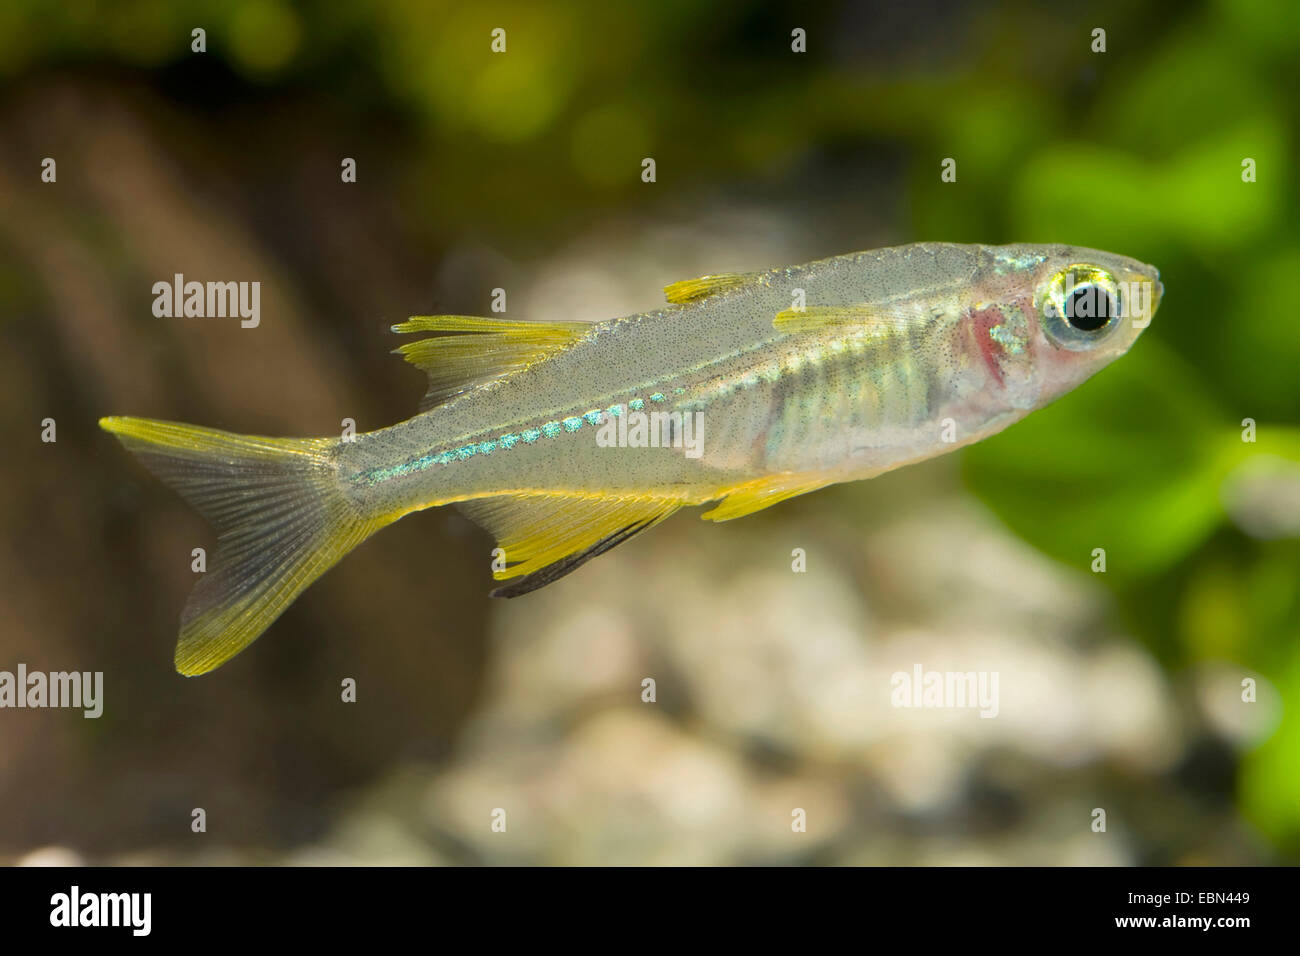 Celebes Rainbowfish High Resolution Stock Photography And Images Alamy